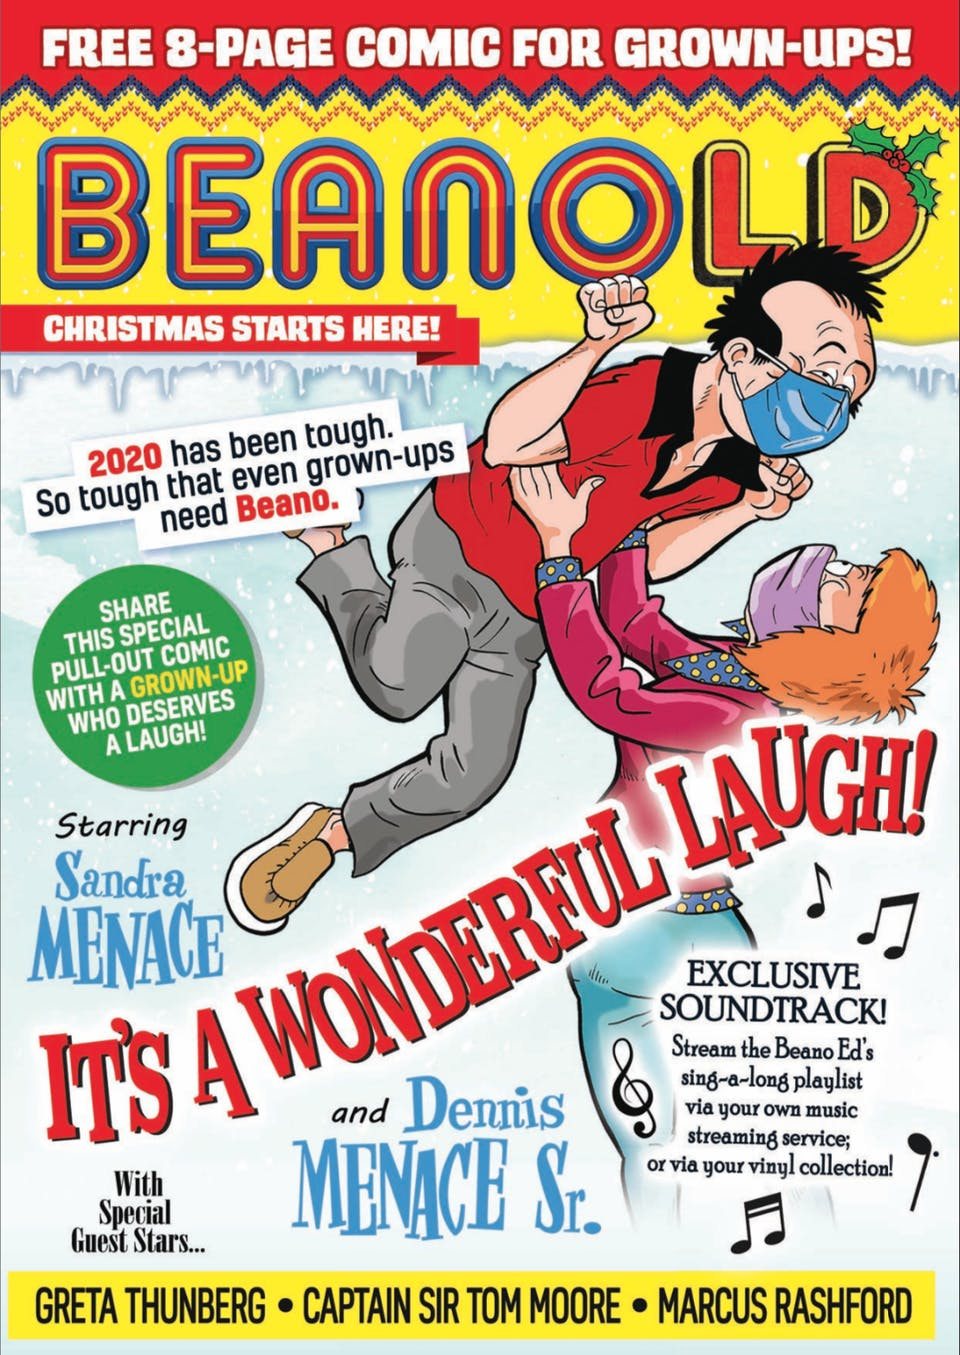 BeanOLD Issue 1 - It's a Wonderful Laugh!